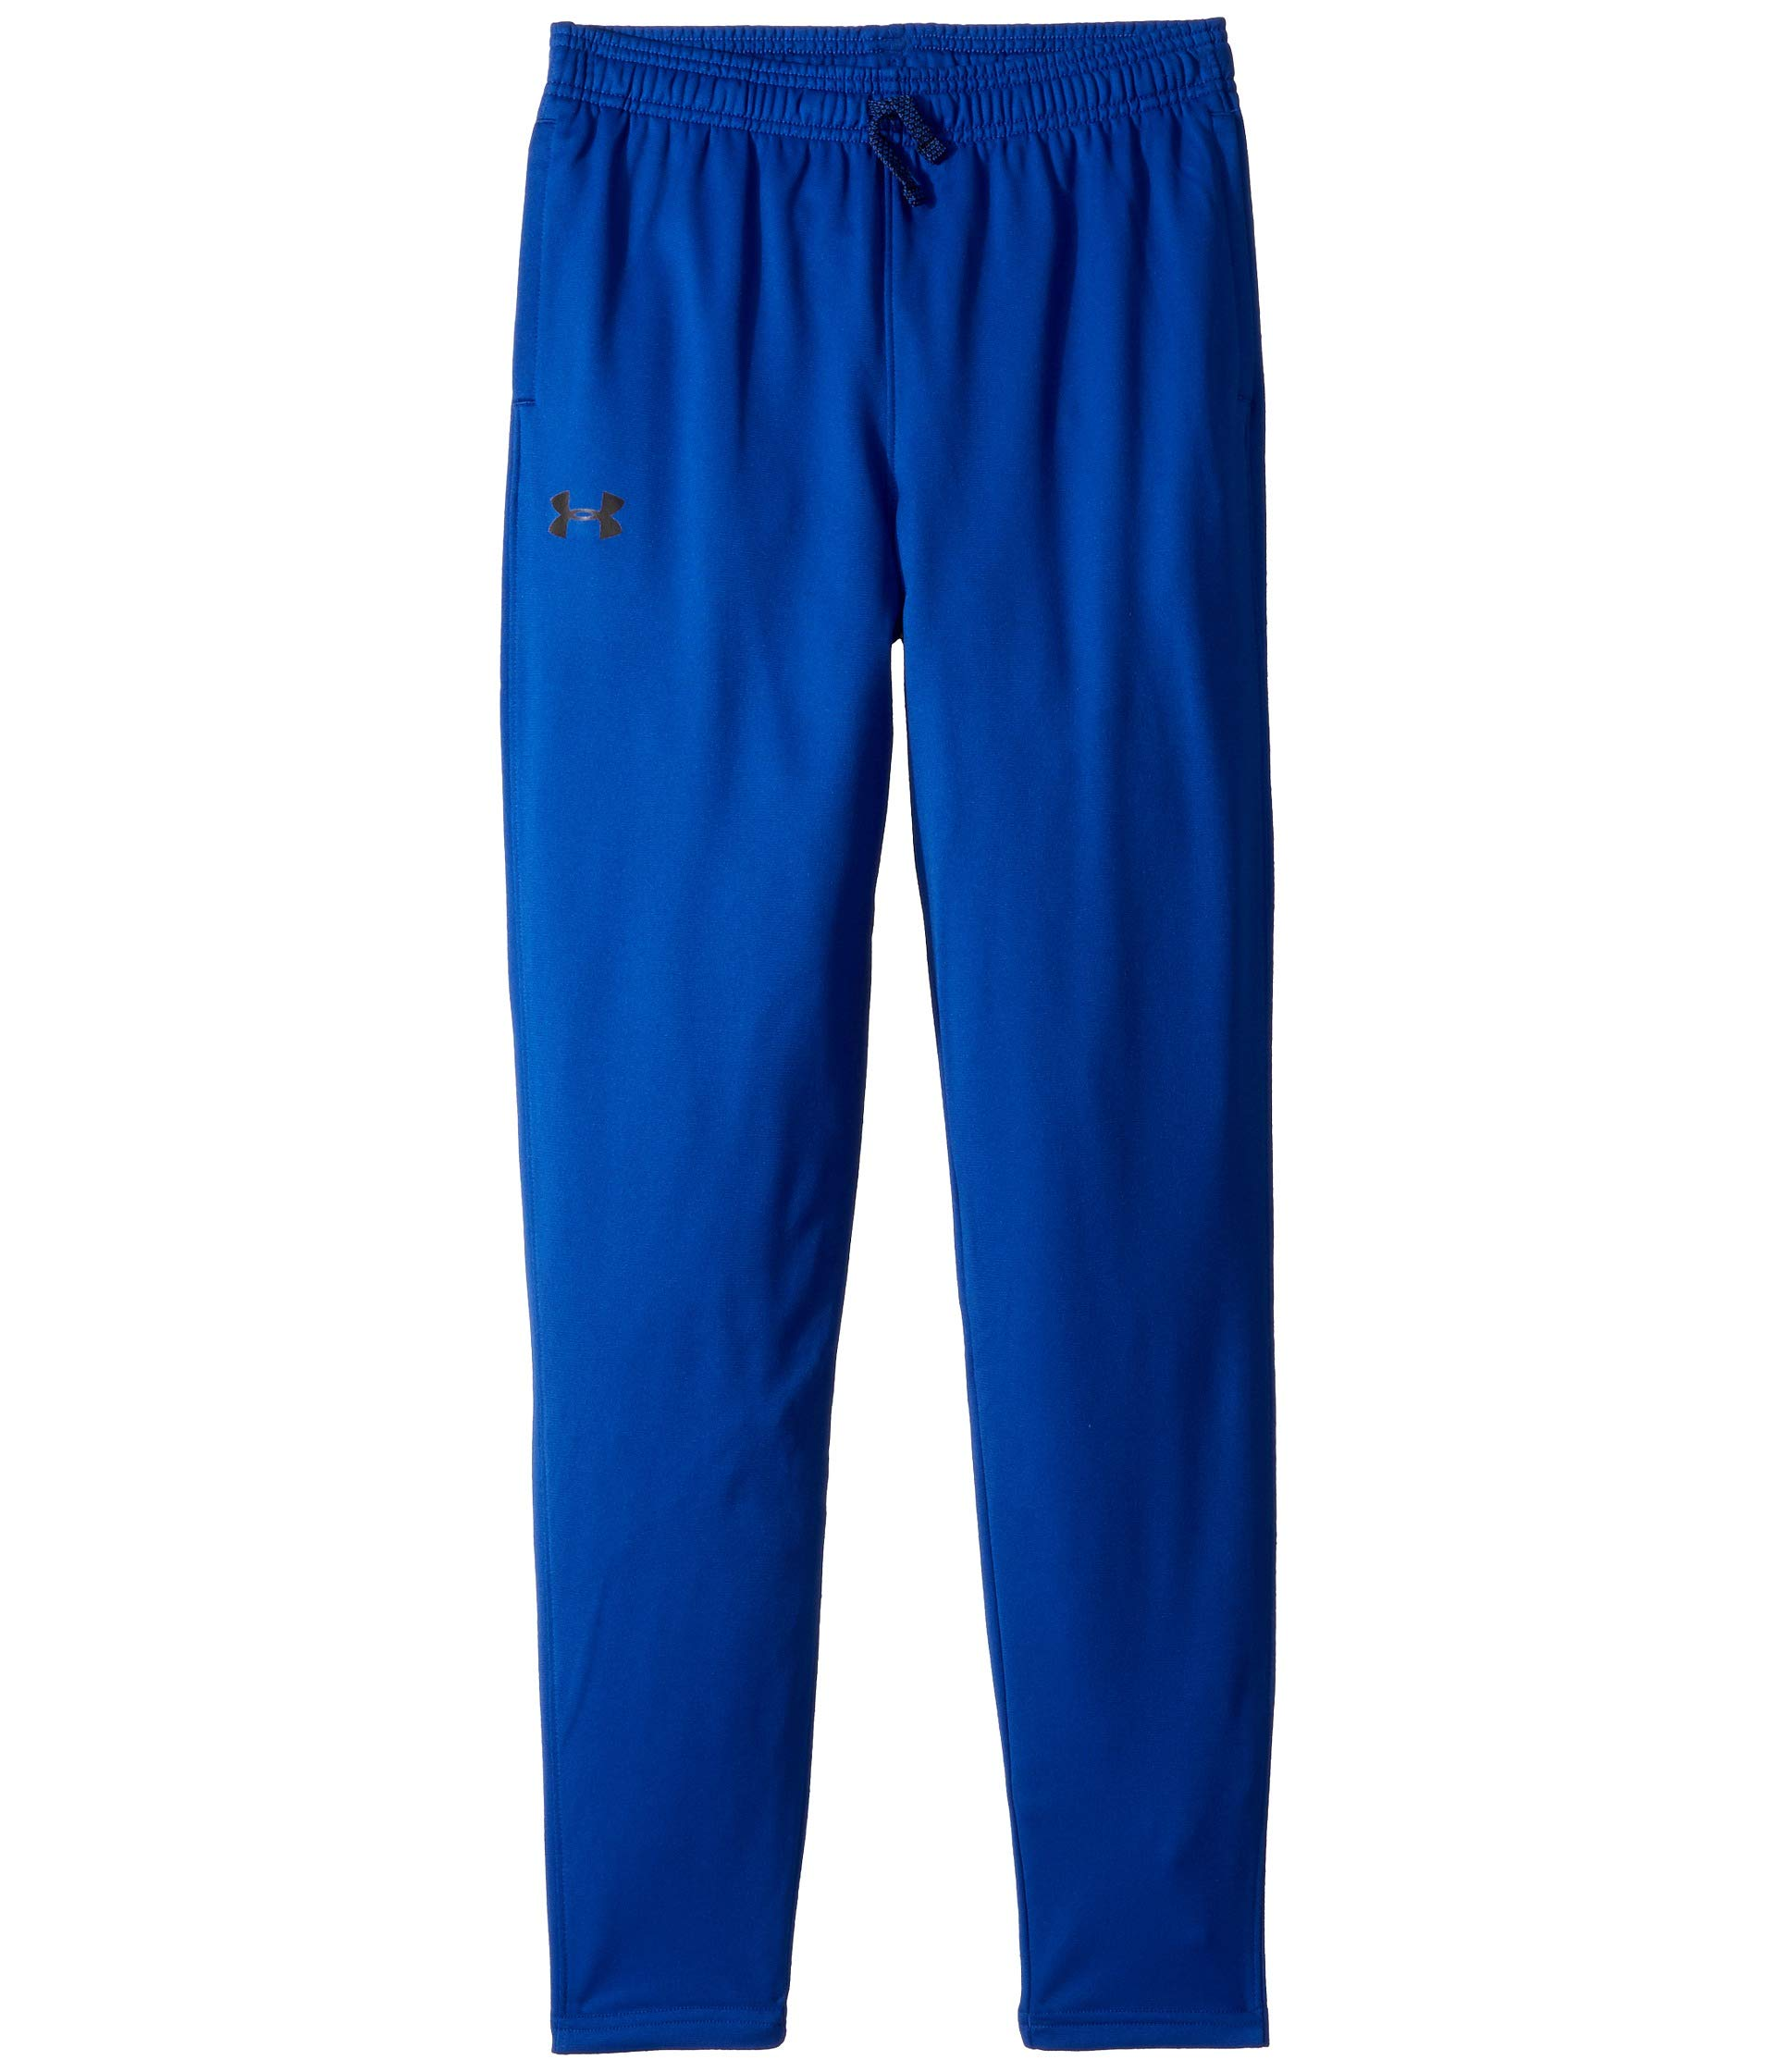 Under Armour Kids Boy's Brawler Tapered Pants (Big Kids) Royal/Black Small by Under Armour